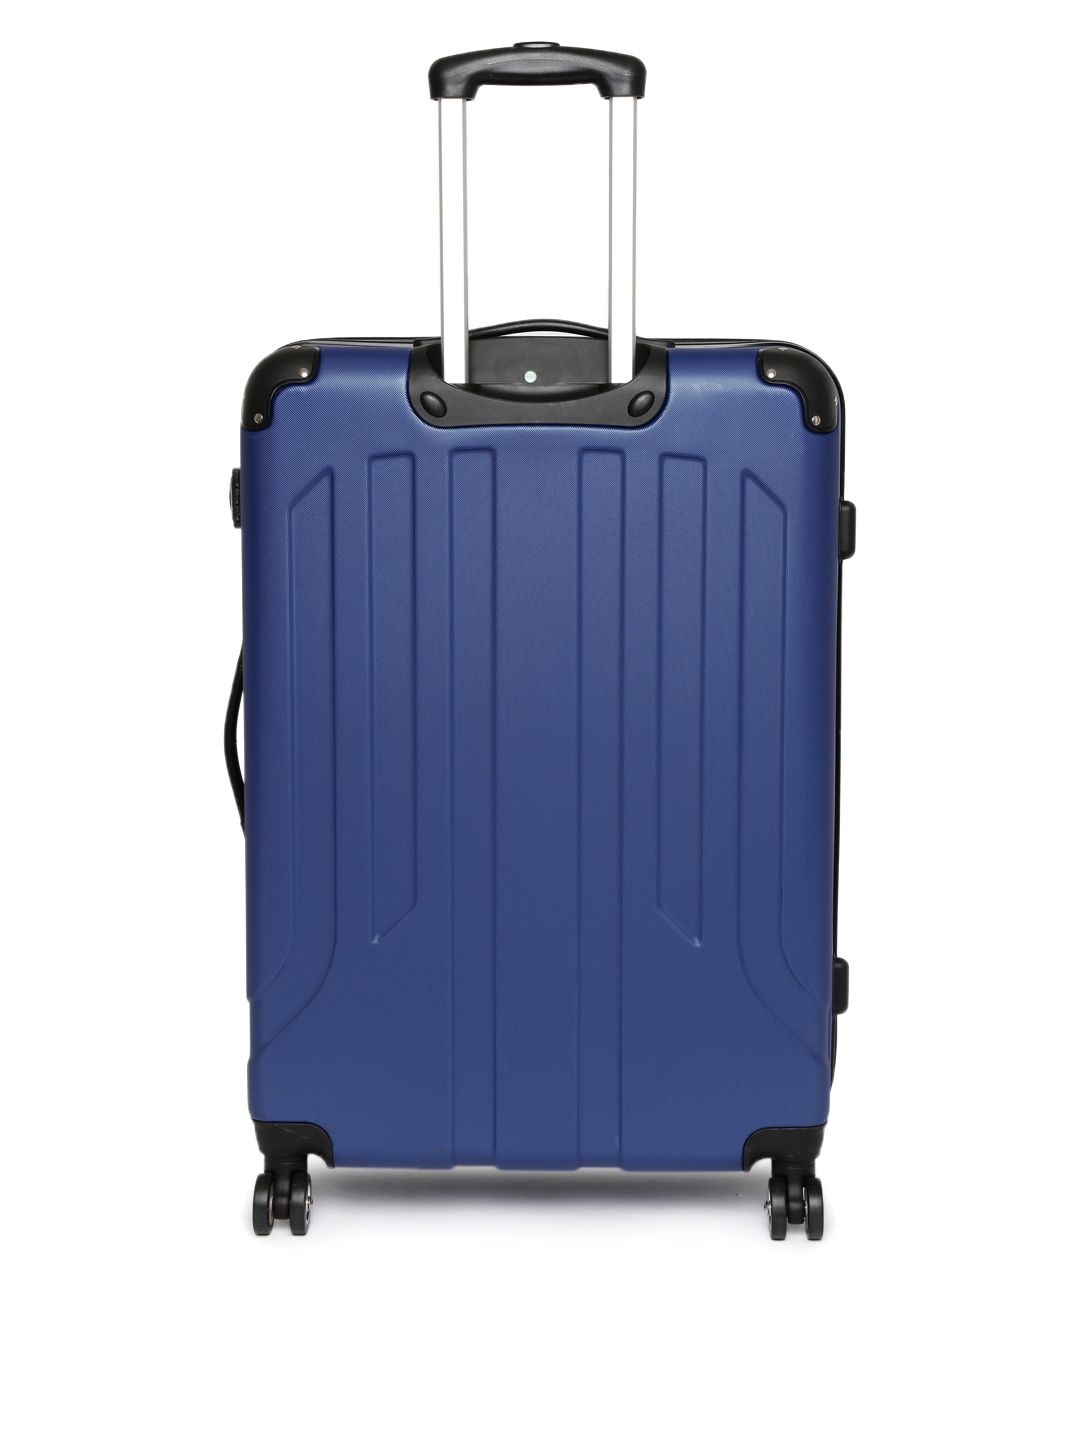 Pronto Trolley Bag - Buy Pronto Trolley Bag online in India